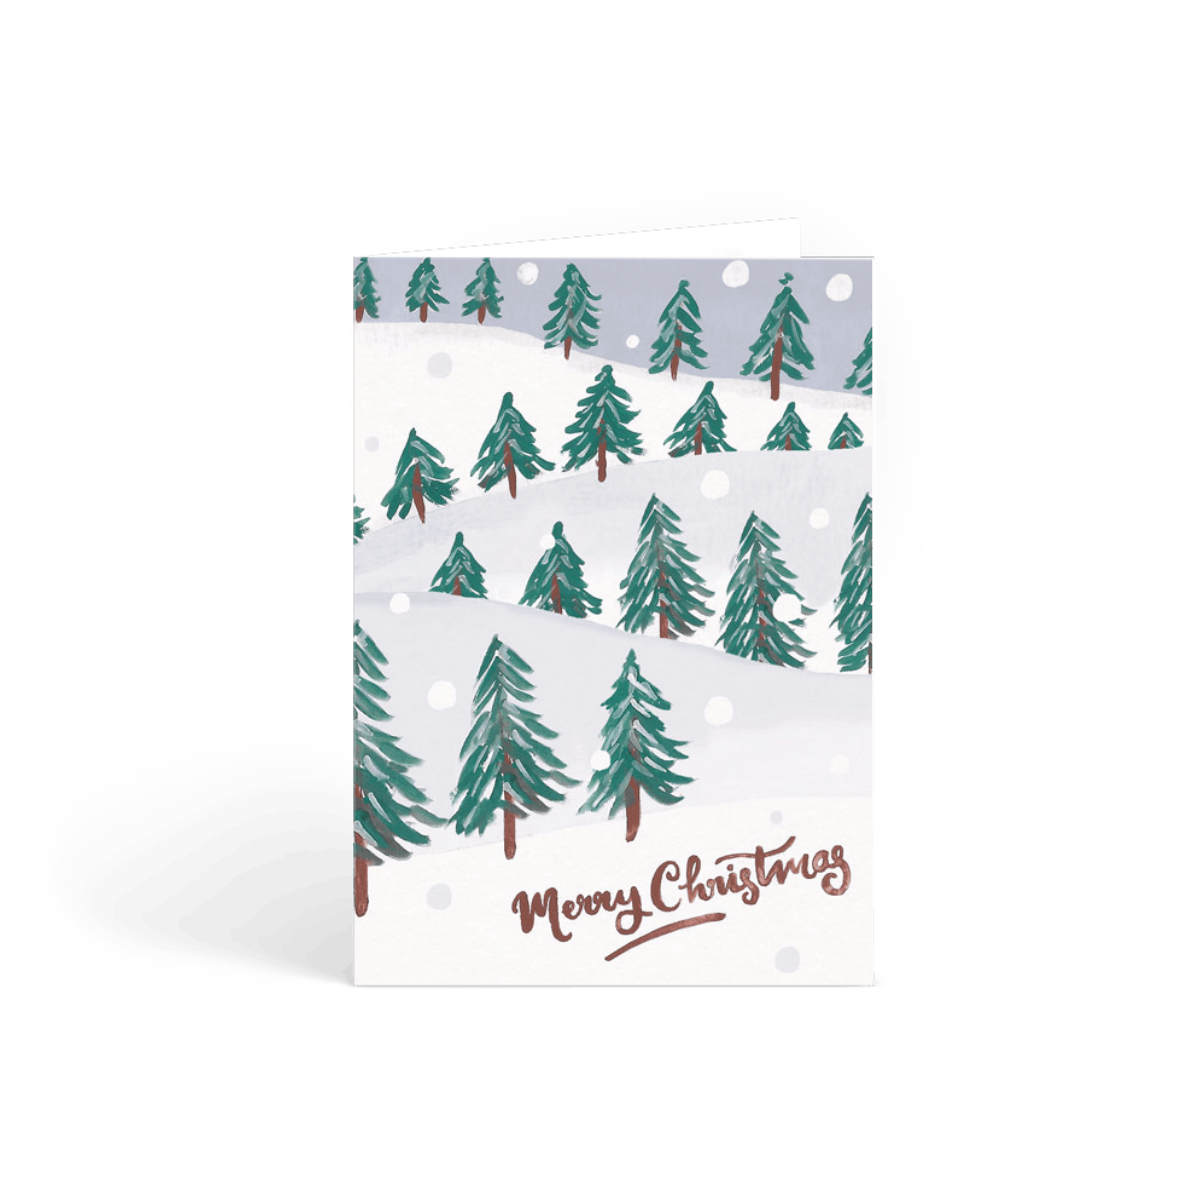 Https%3a%2f%2fwww.papier.com%2fproduct image%2f30182%2f2%2fchristmas forest 7612 avant 1509027458.png?ixlib=rb 1.1